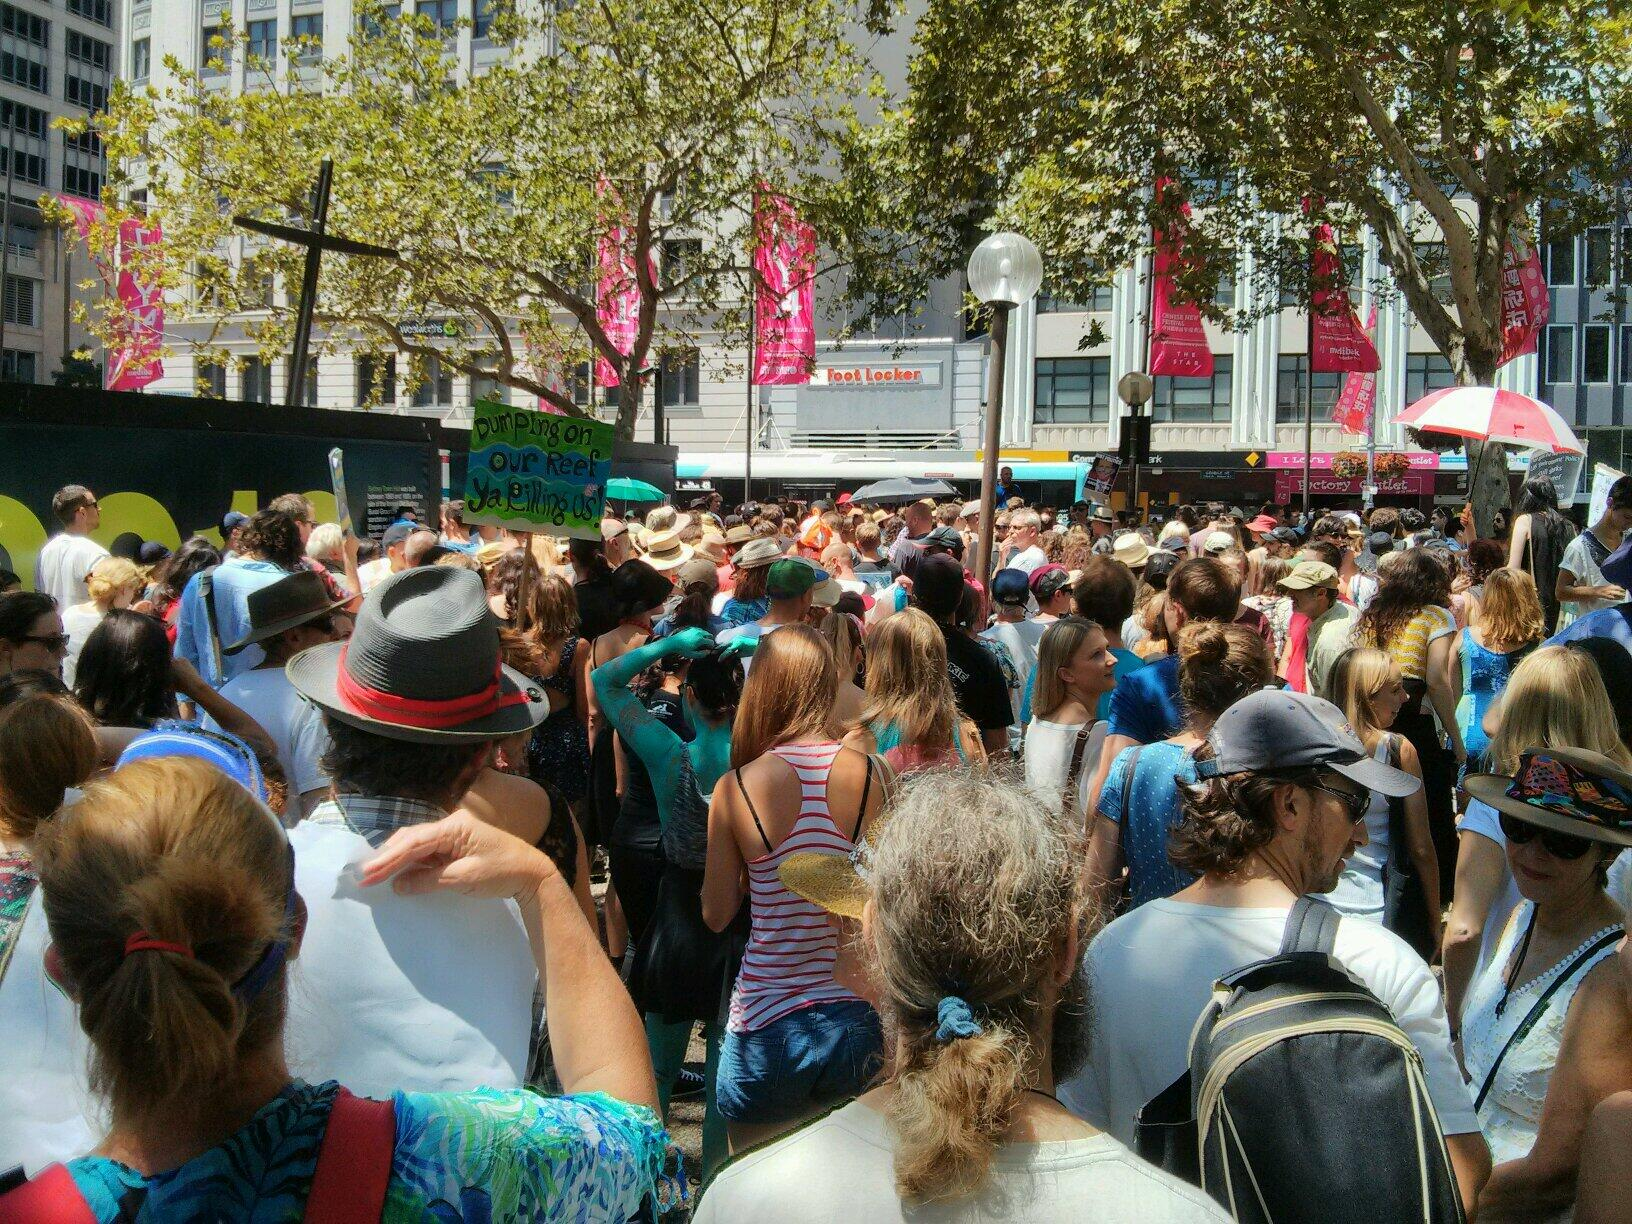 Twitter / GreenpeaceAustP: Massive crowd here in Sydney ...